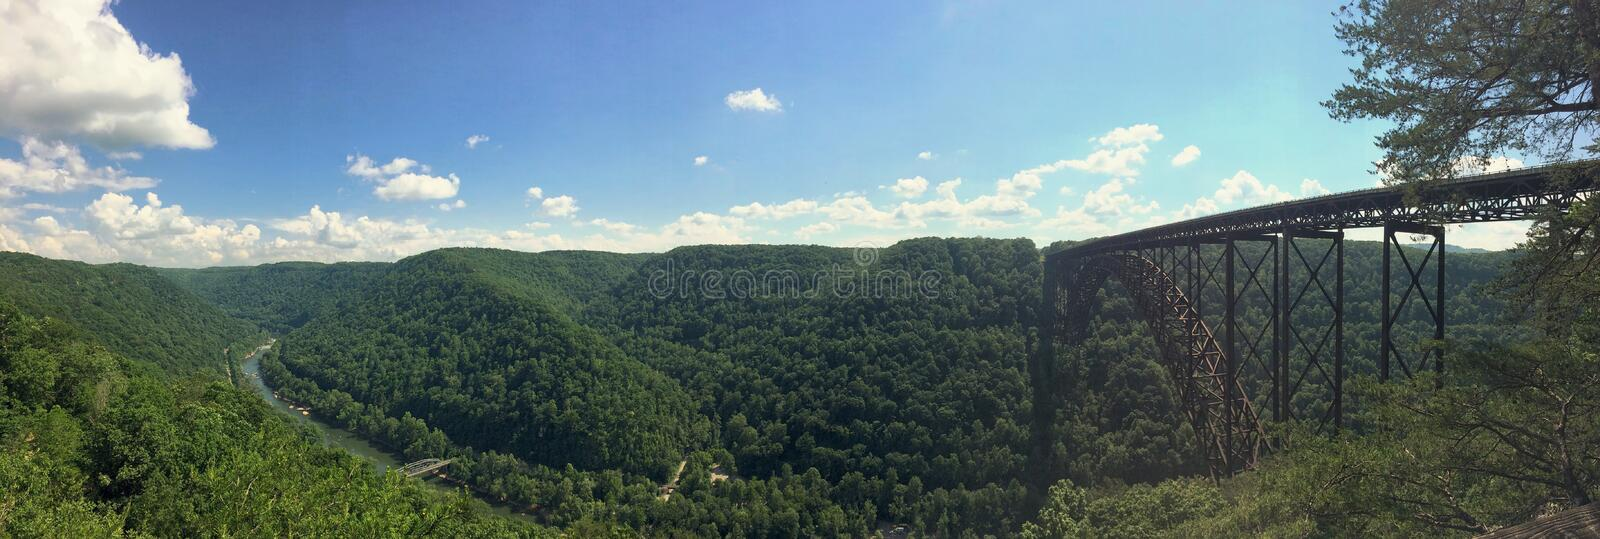 New River Gorge and Bridge. Panoramic photo of the New River Gorge and Bridge near Fayetteville West Virginia stock image